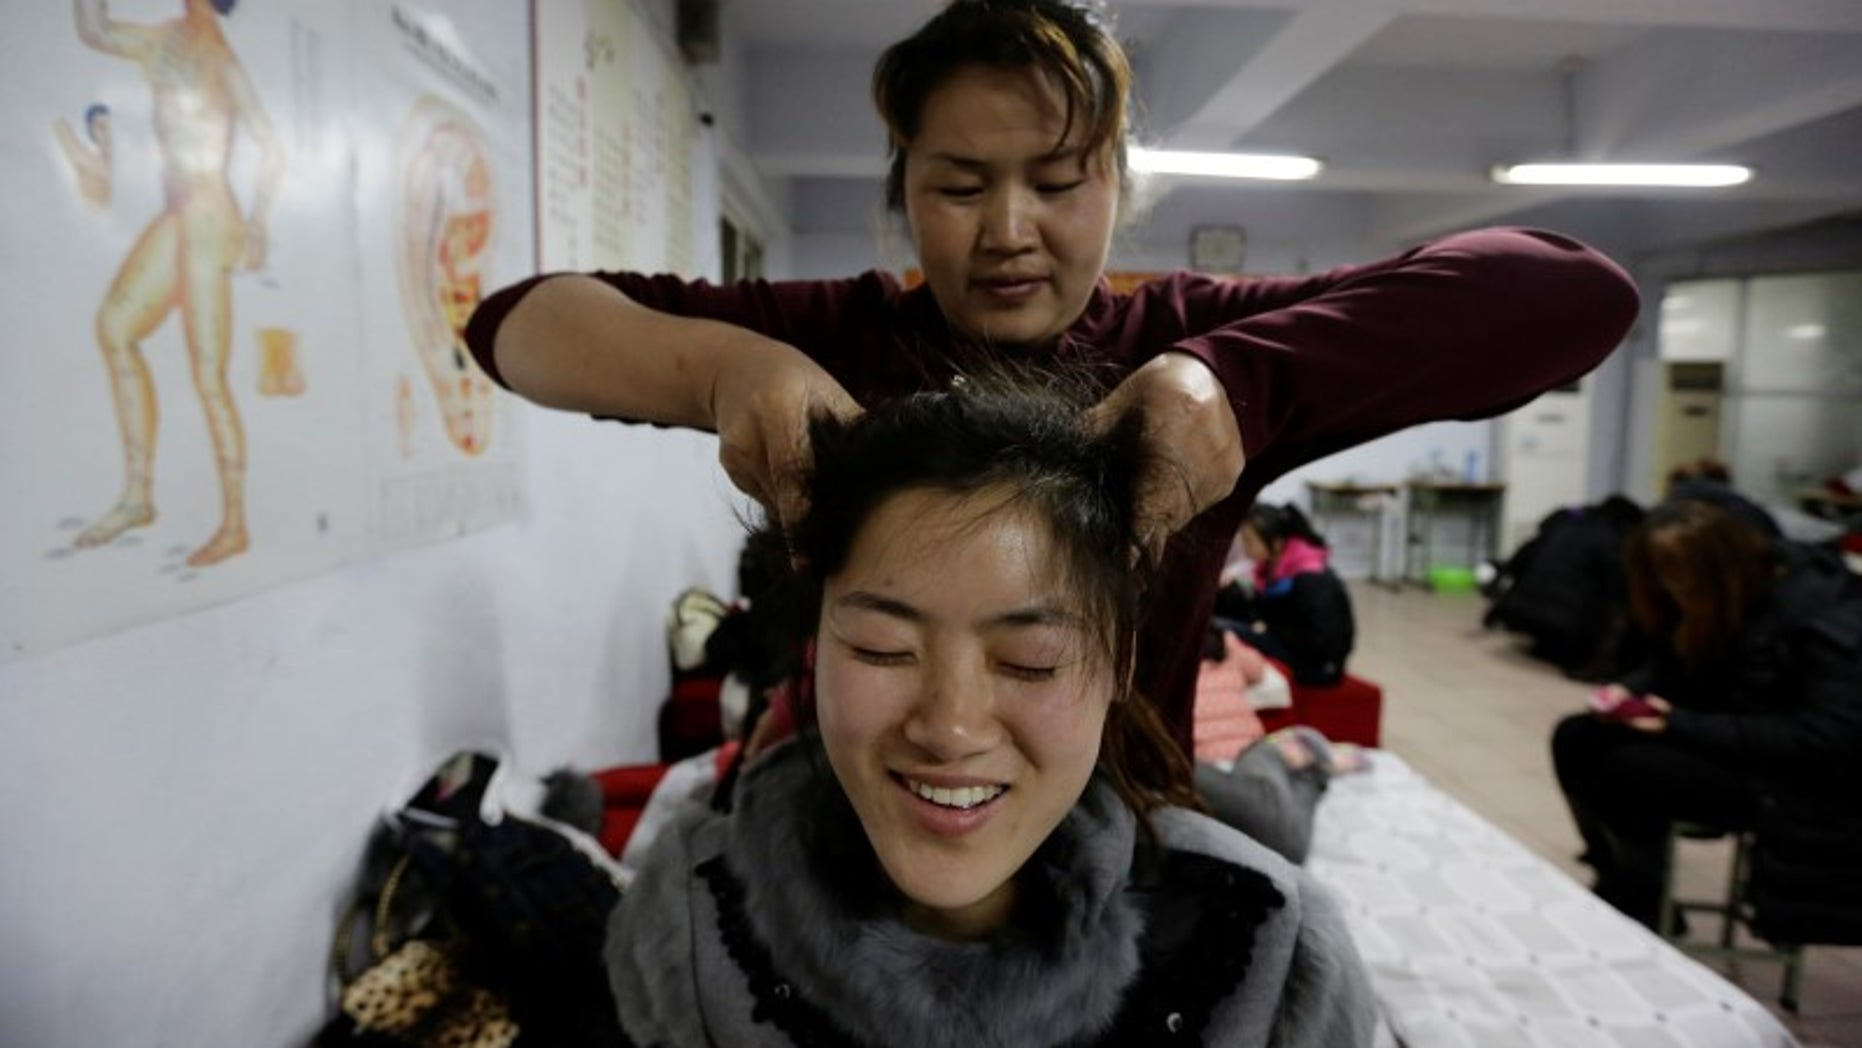 A student presses the acupuncture points on the head of a fellow student as they practise massage on each other during a training course at Huaxia Liangtse Massage Training Center in Zhengzhou, Henan province, February 17, 2014.  REUTERS/Jason Lee